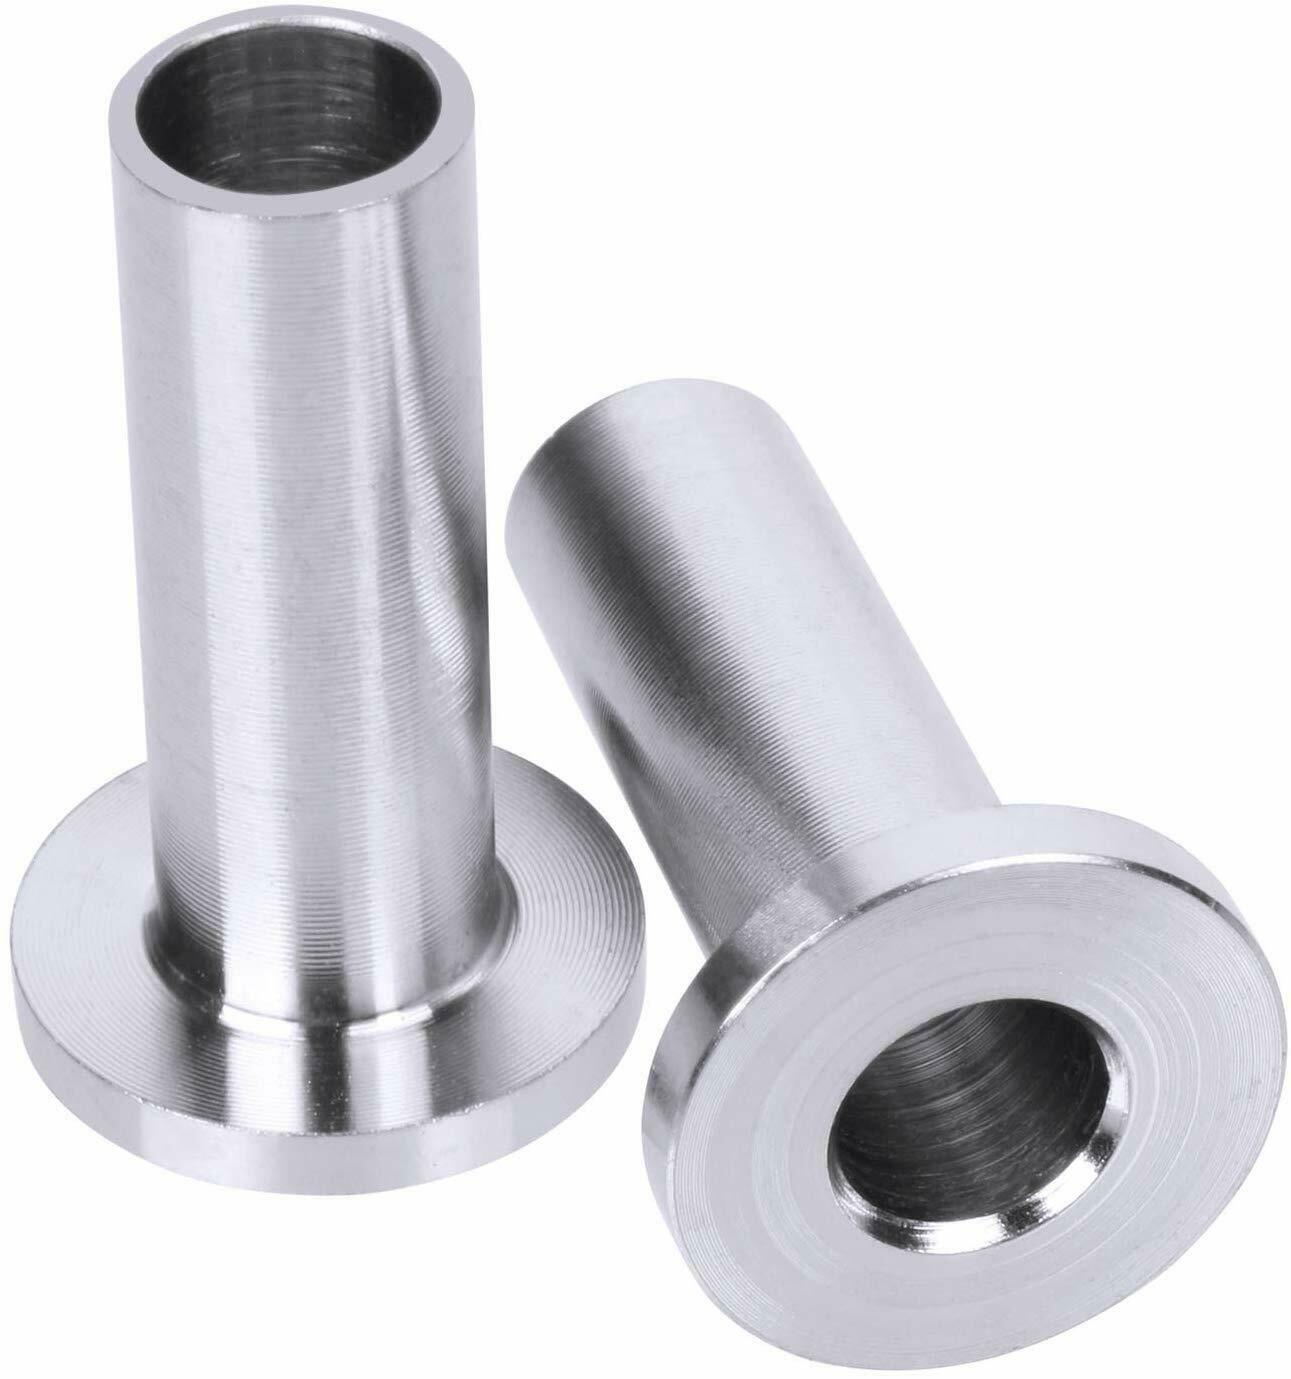 """Details about  /25 Marine Grade T316 Stainless Steel Protective Protector Sleeve for 1//4/"""" Cable"""